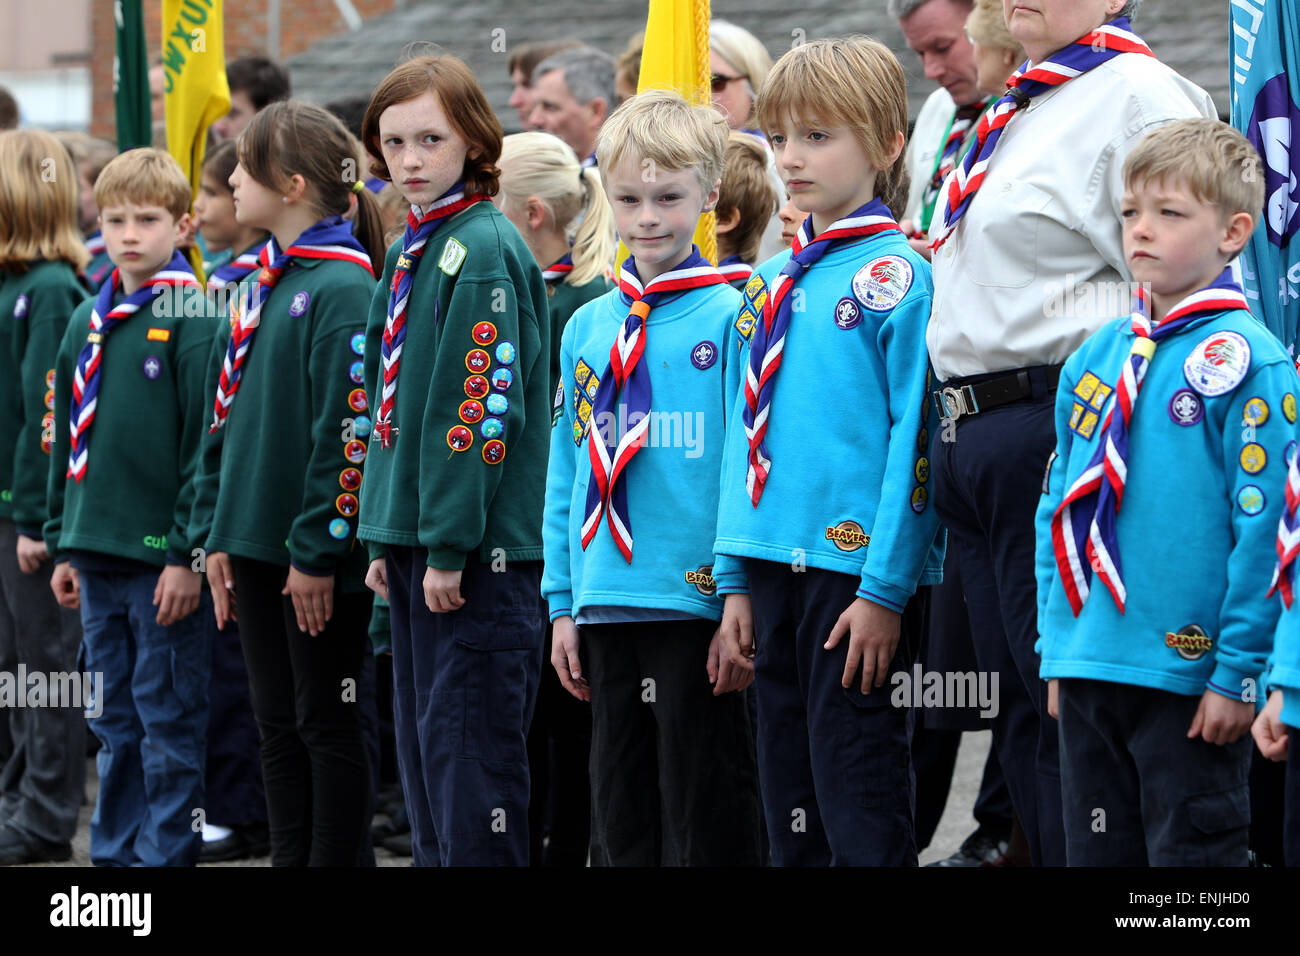 Scouts pictured on a march through Petworth on St Georges Day 2015, West Sussex, UK. - Stock Image